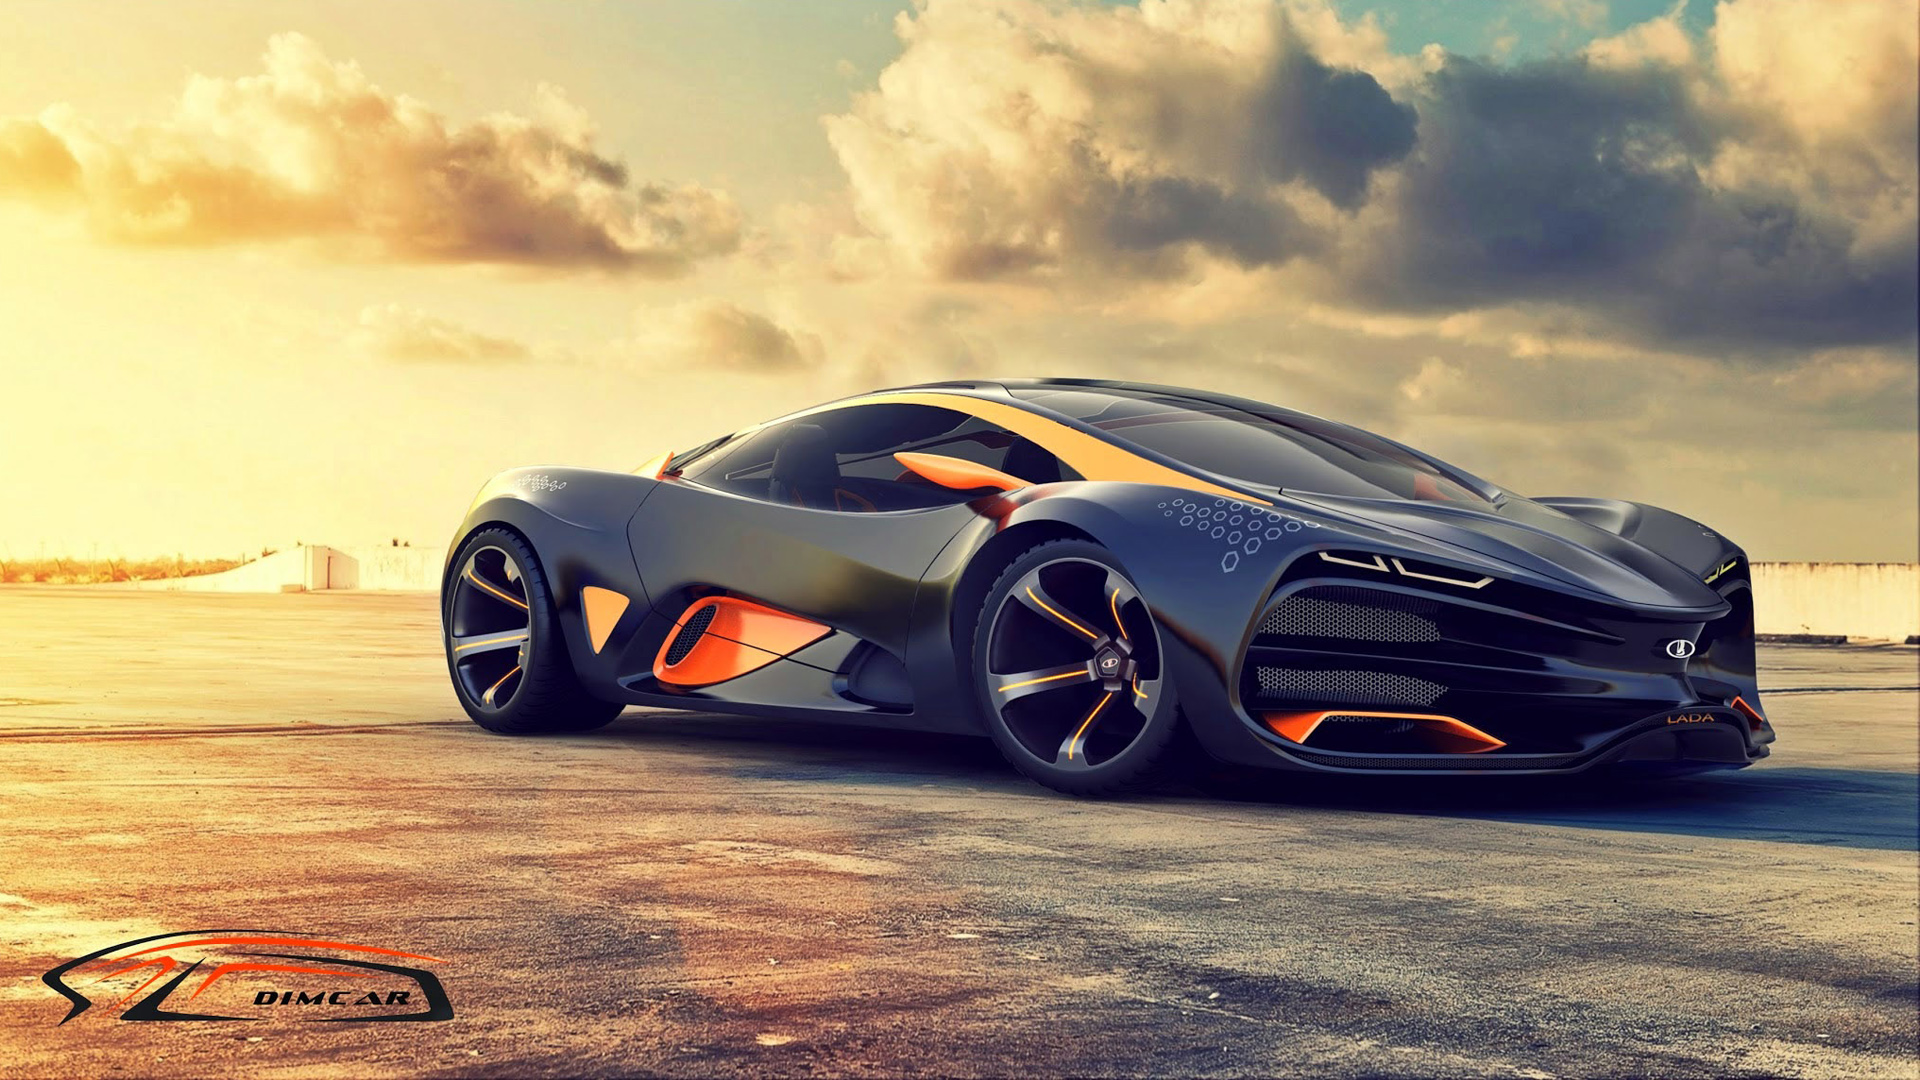 2015 Lada Raven Supercar Concept 2 Wallpaper HD Car Wallpapers 1920x1080